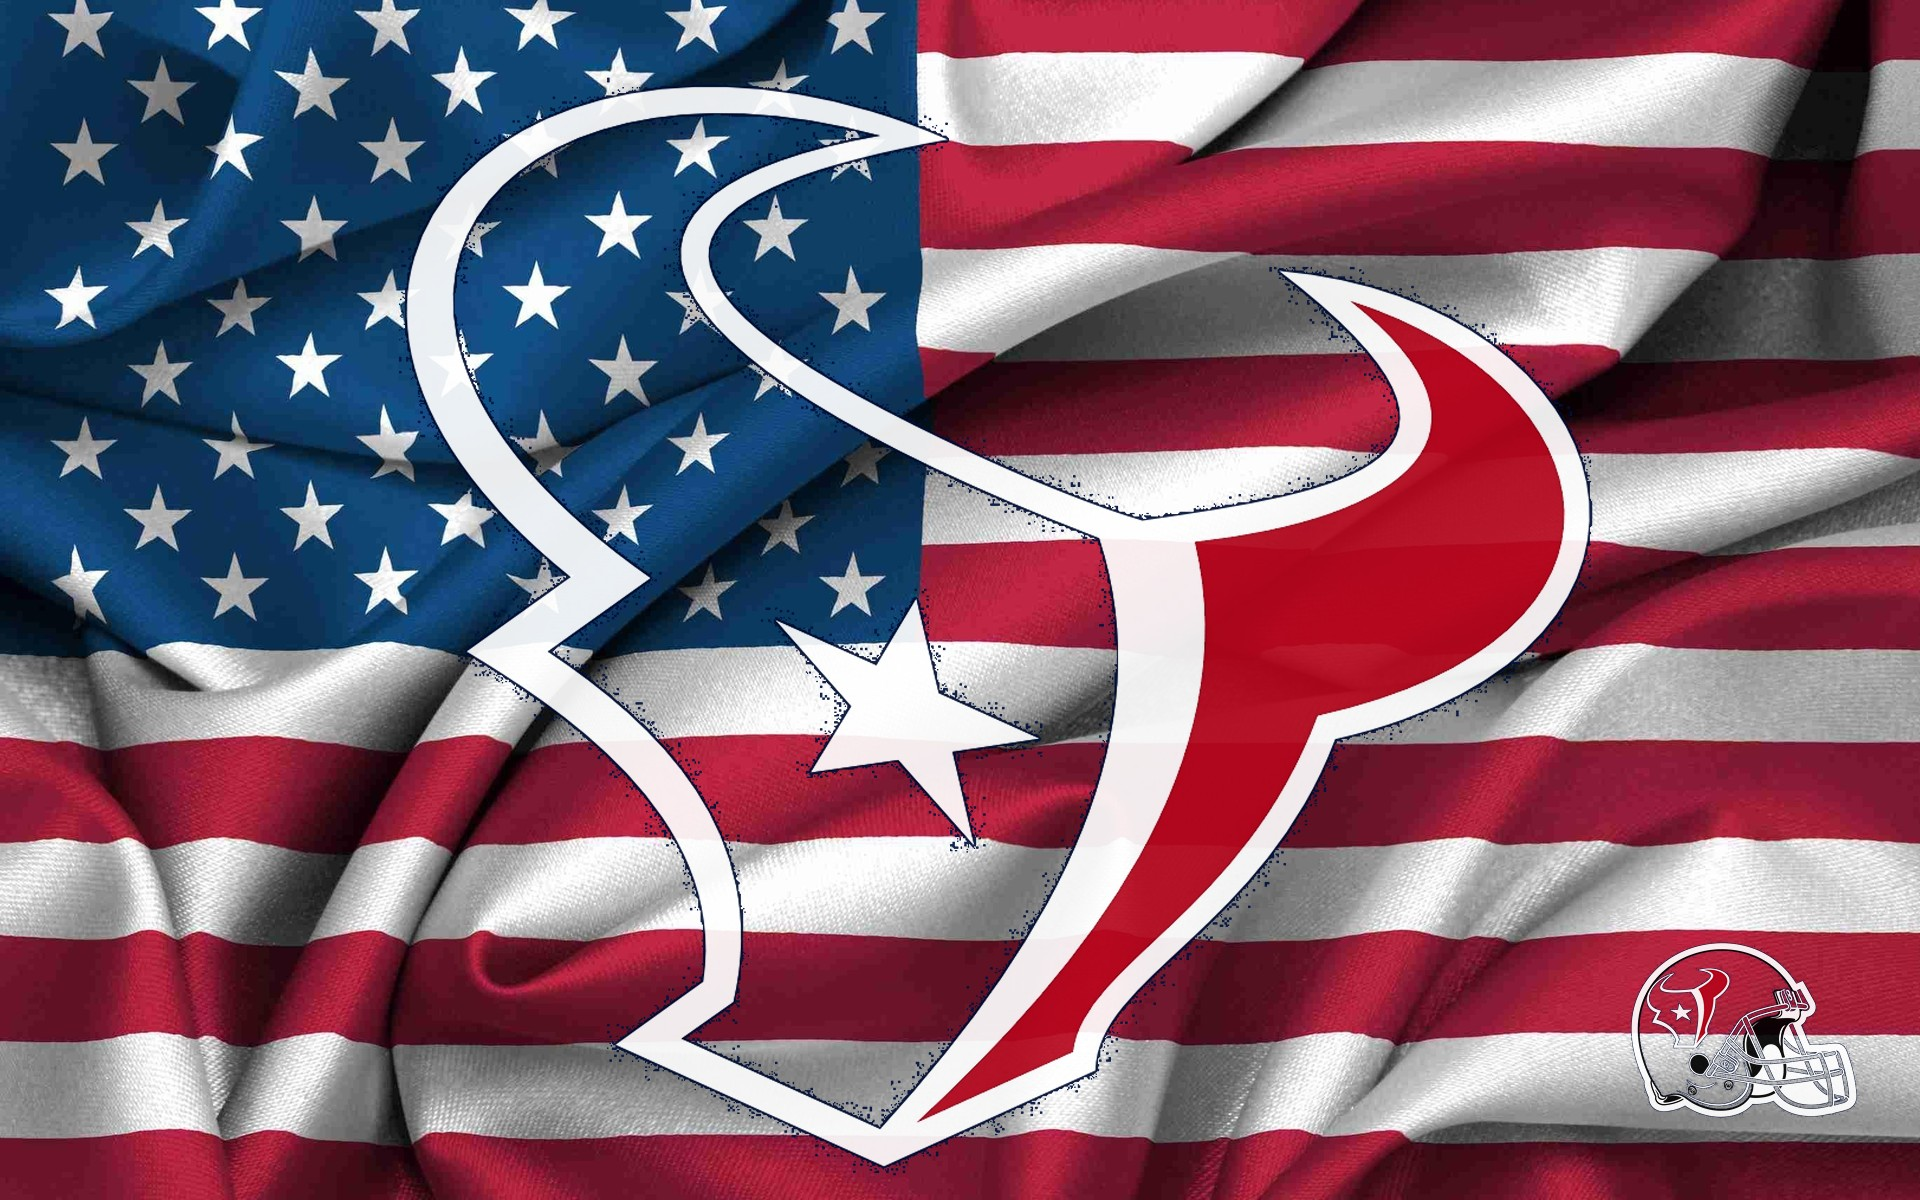 HOUSTON TEXANS nfl football t wallpaper 1920x1200 156245 1920x1200